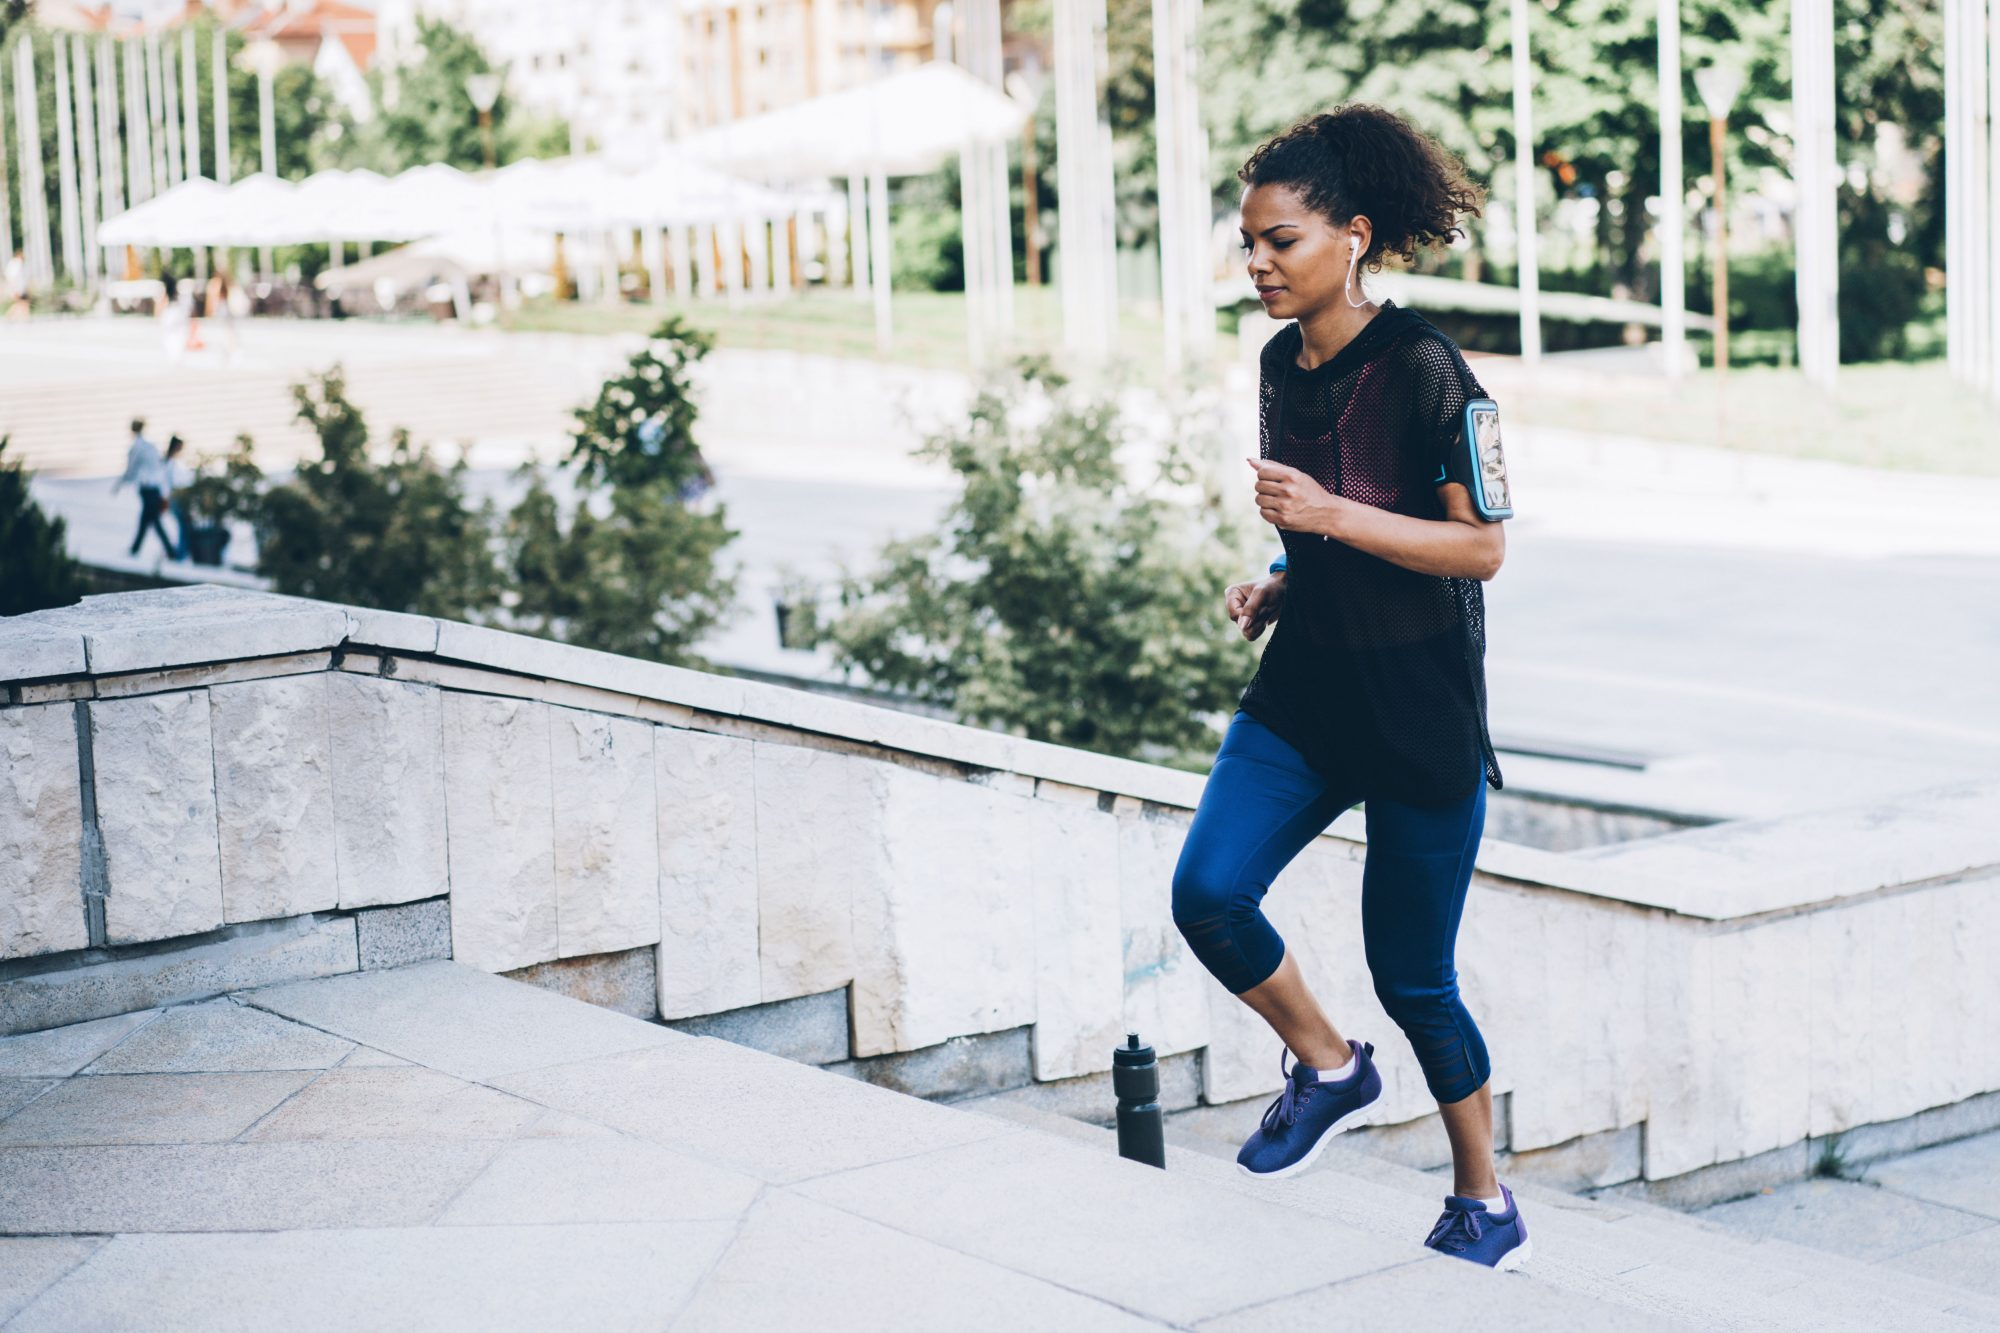 woman exercising on stairs outdoors